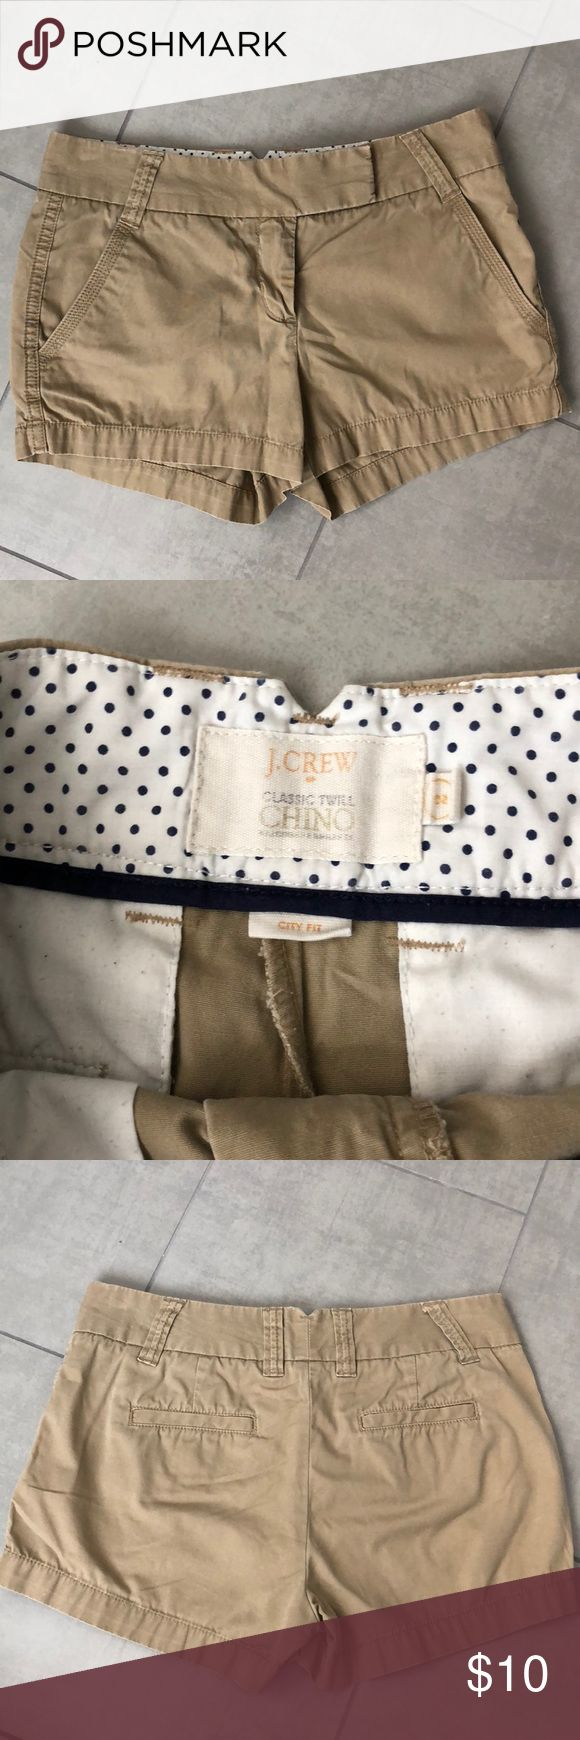 "J. Crew Women's City Fit Chino Khaki Shorts Perfect for summer! J Crew city fit chino shorts in EUC. No stains, tears or holes. Khaki color. 3"" inseam J. Crew Shorts"